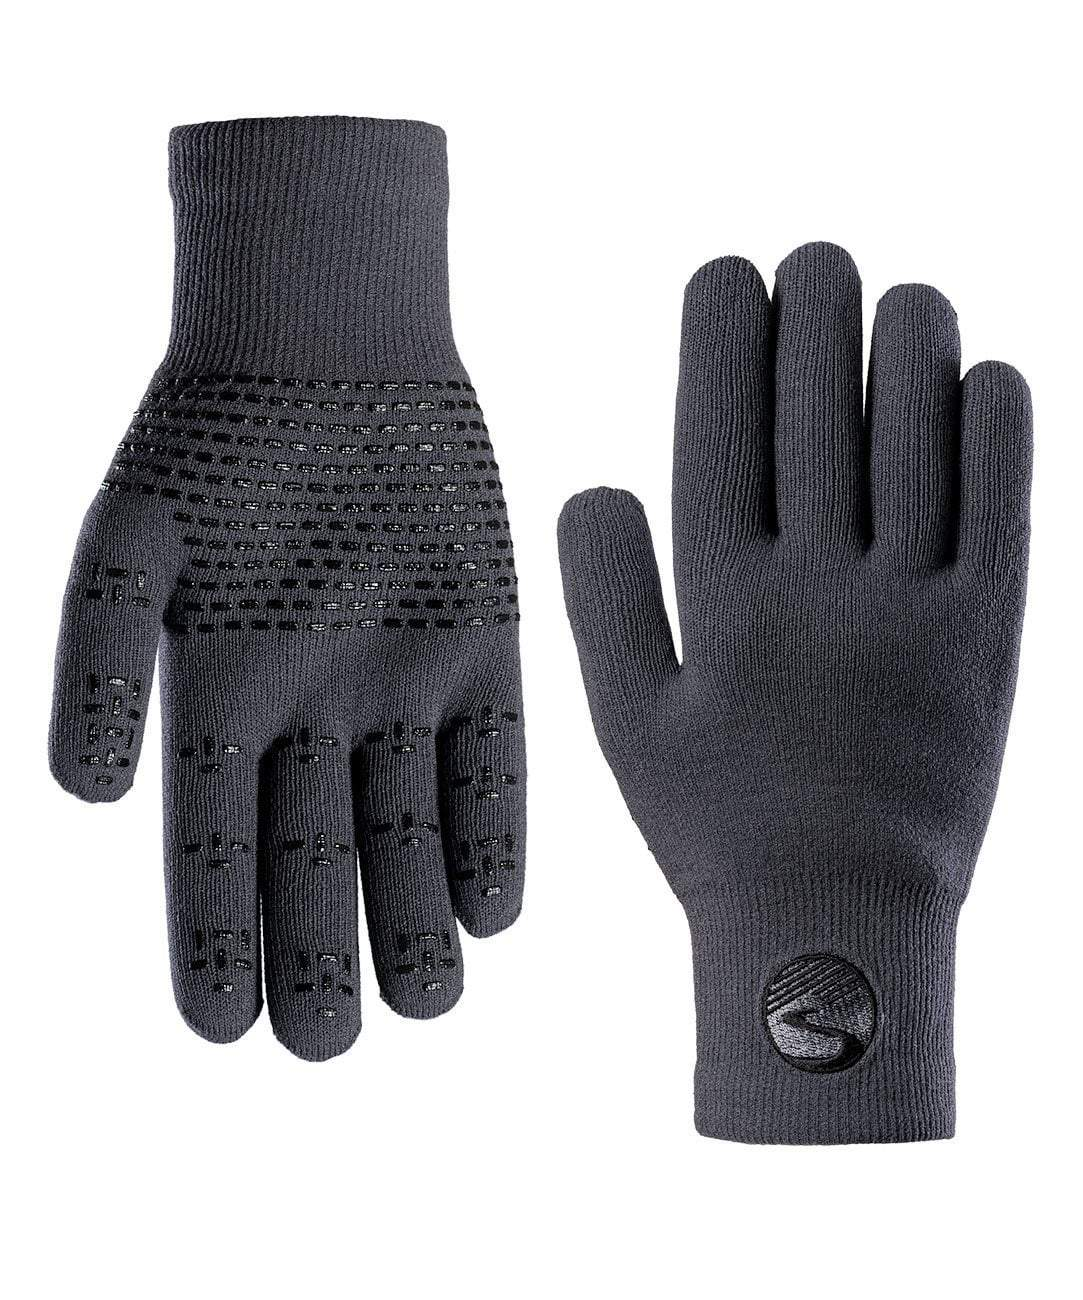 Crosspoint Waterproof Knit Wool Gloves